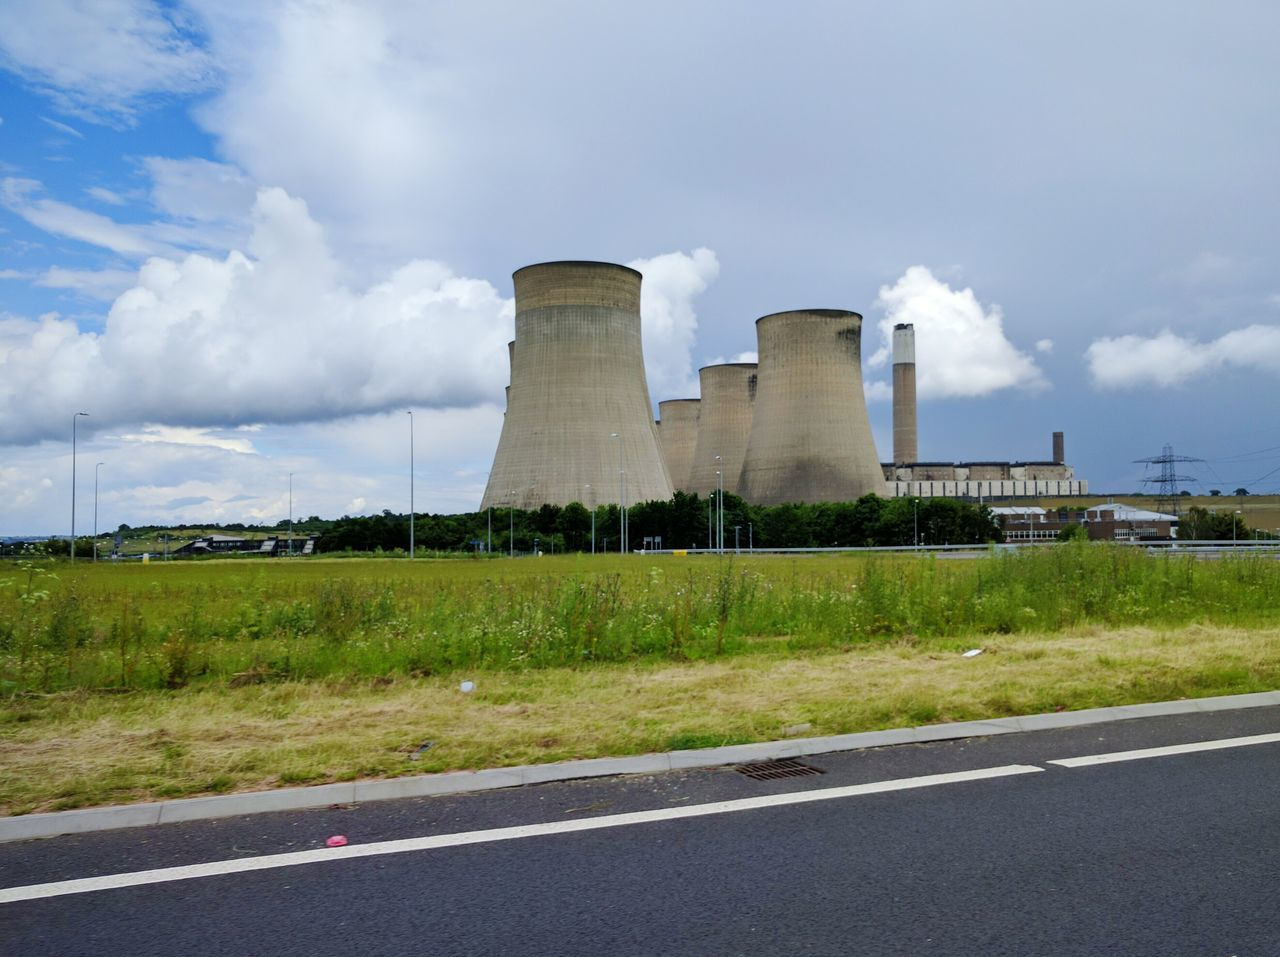 built structure, sky, cloud - sky, architecture, day, road, industry, outdoors, no people, building exterior, grass